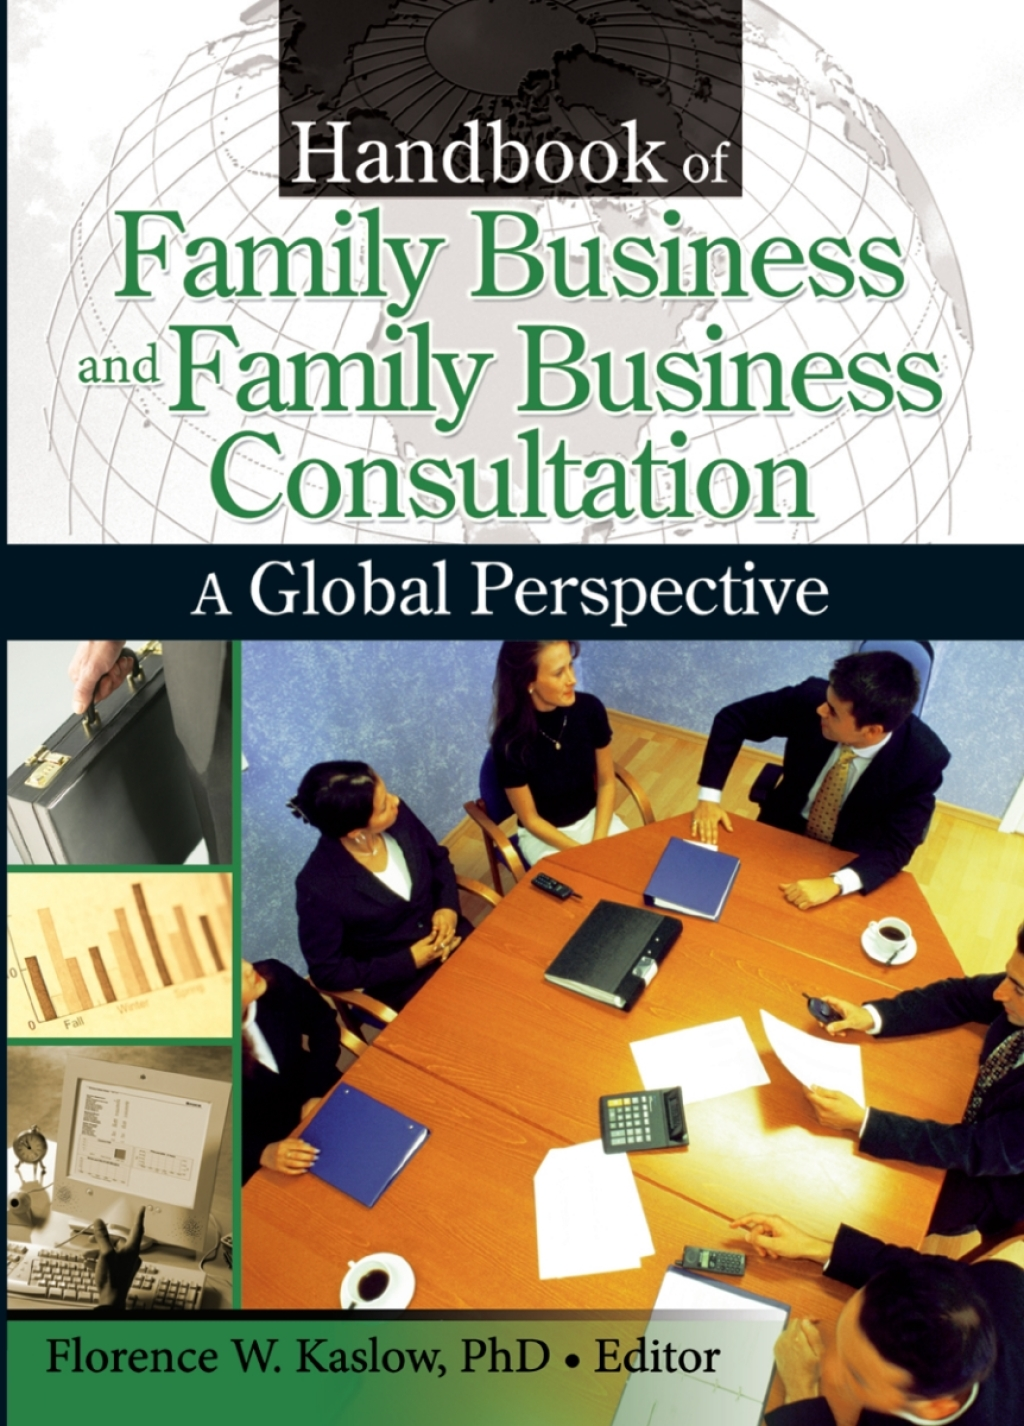 Handbook of Family Business and Family Business Consultation (eBook Rental)